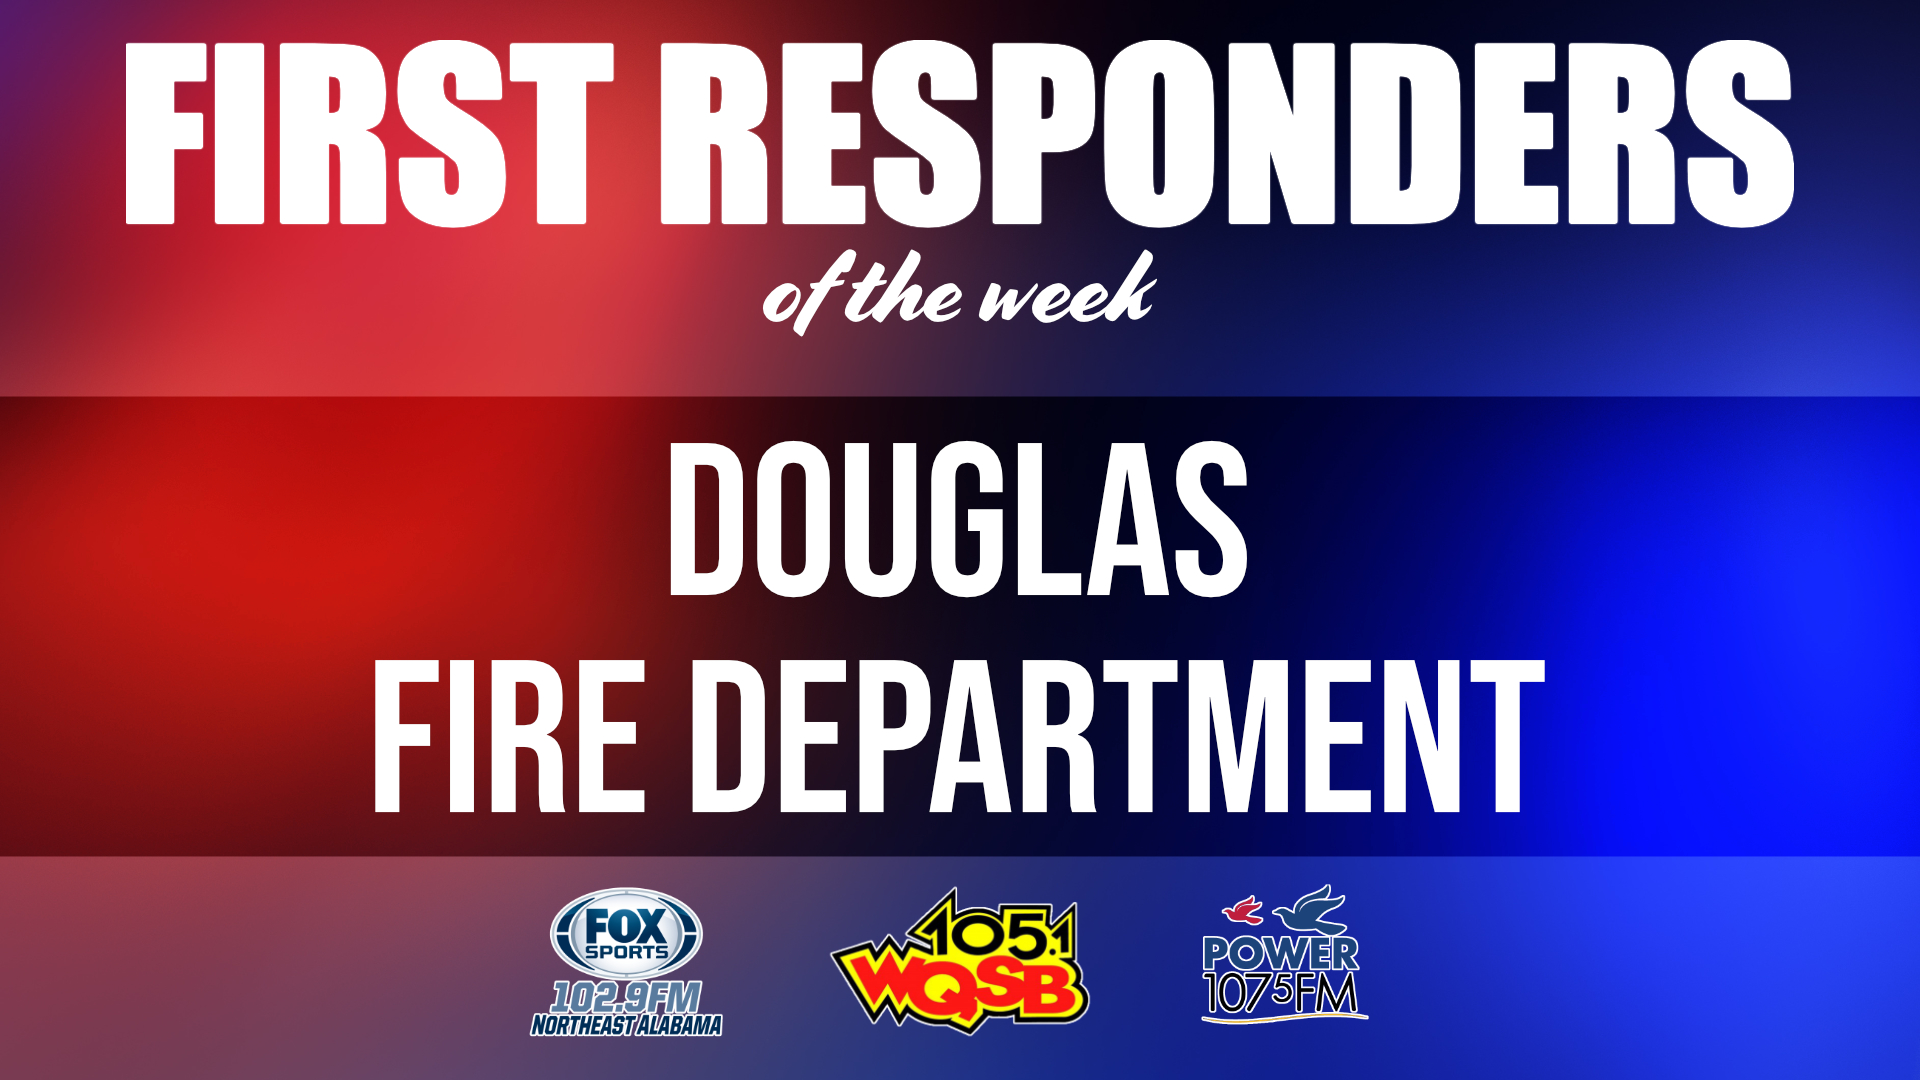 WQSB First Responders of the Week 2021 February 15, 2021